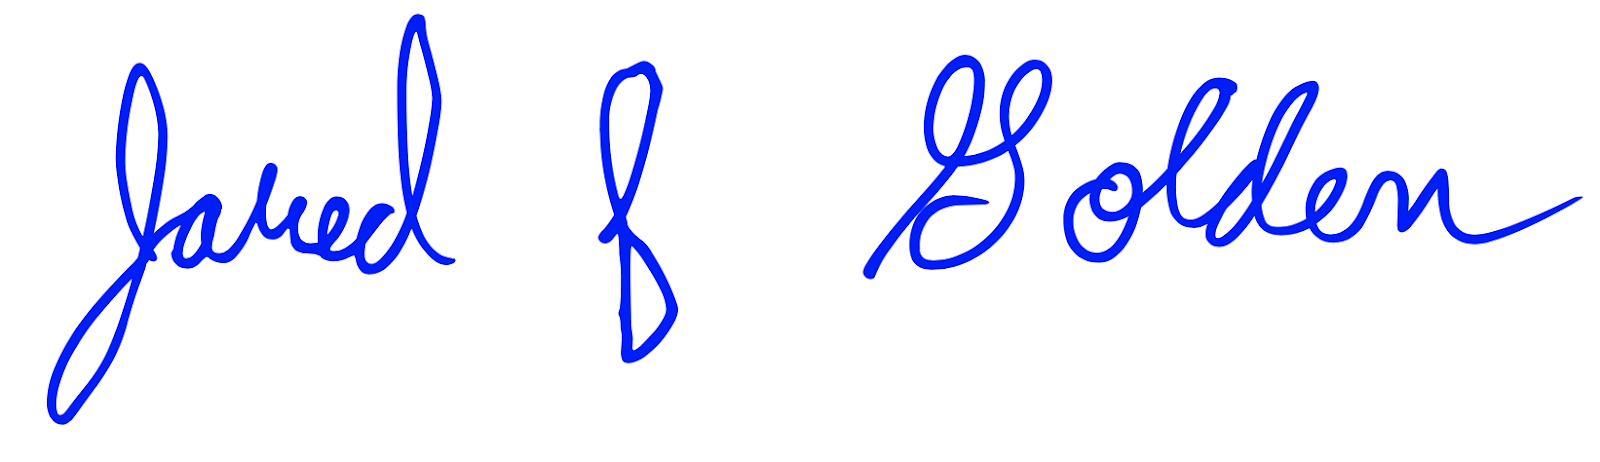 Congressman Golden's signature.